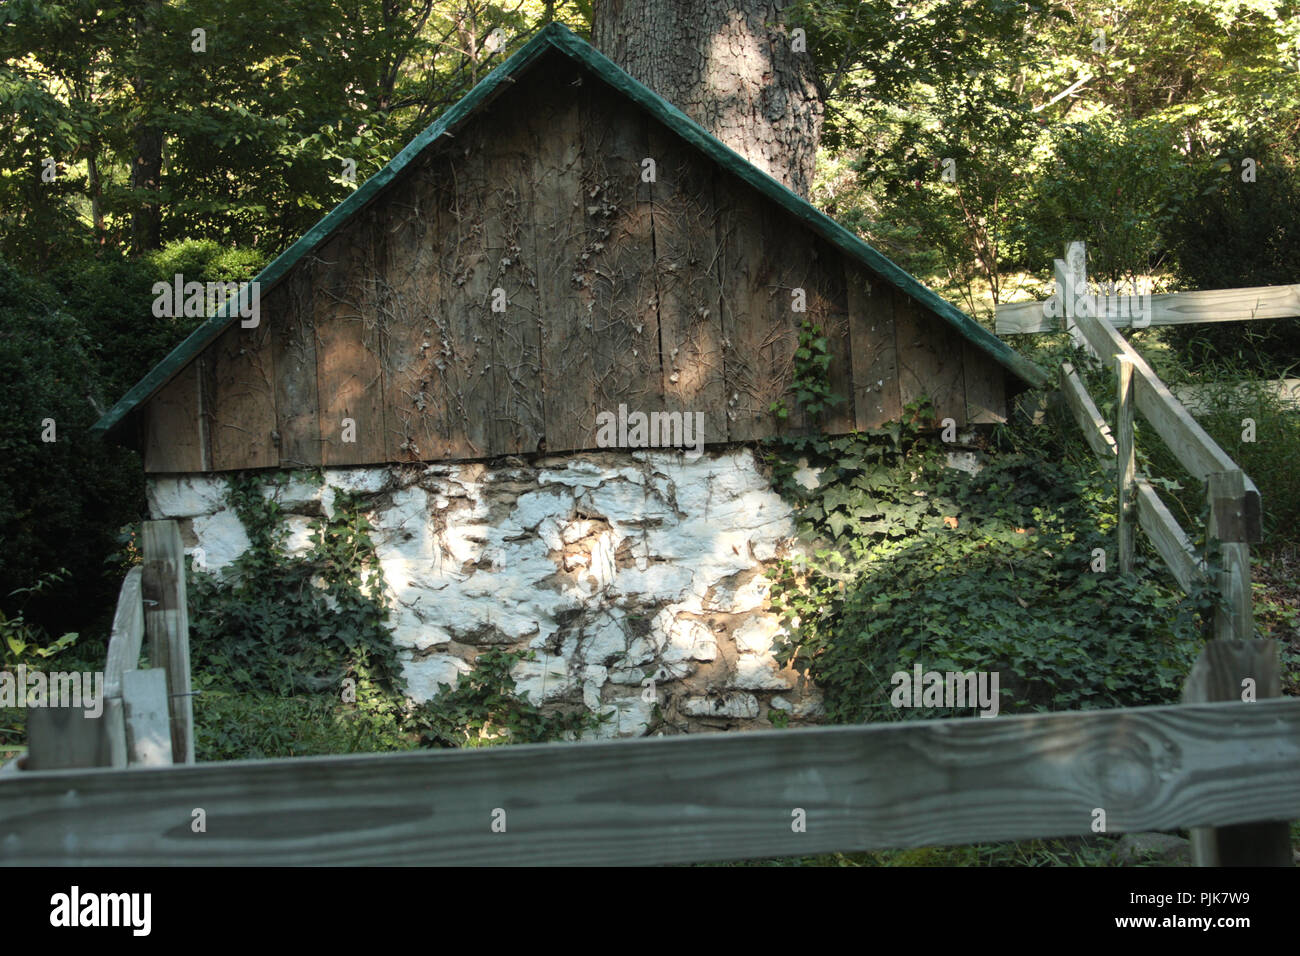 Unkempt shed in Virginia's countryside - Stock Image